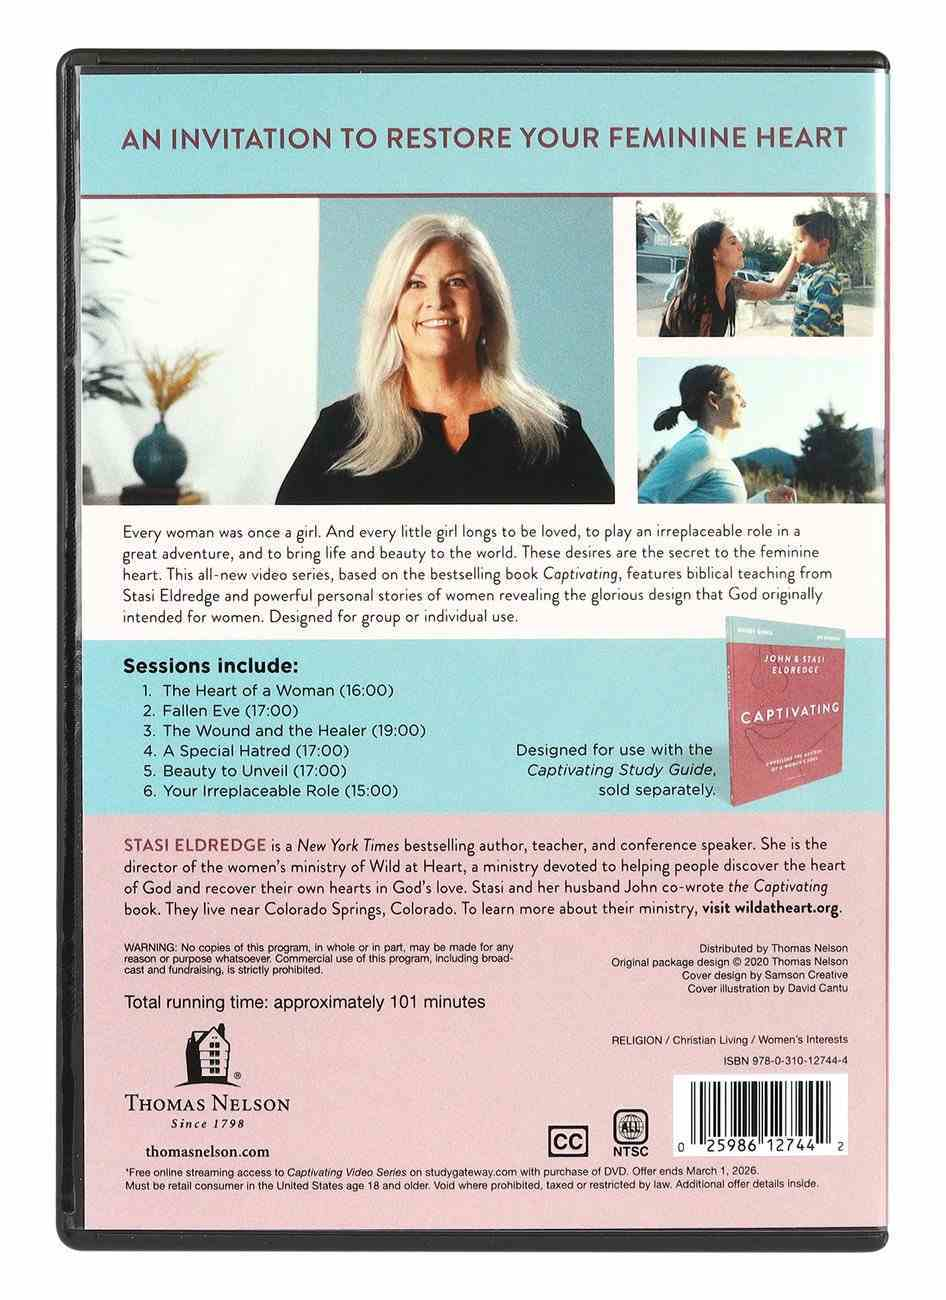 Captivating: Unveiling the Mystery of a Woman's Soul (Video Study) DVD